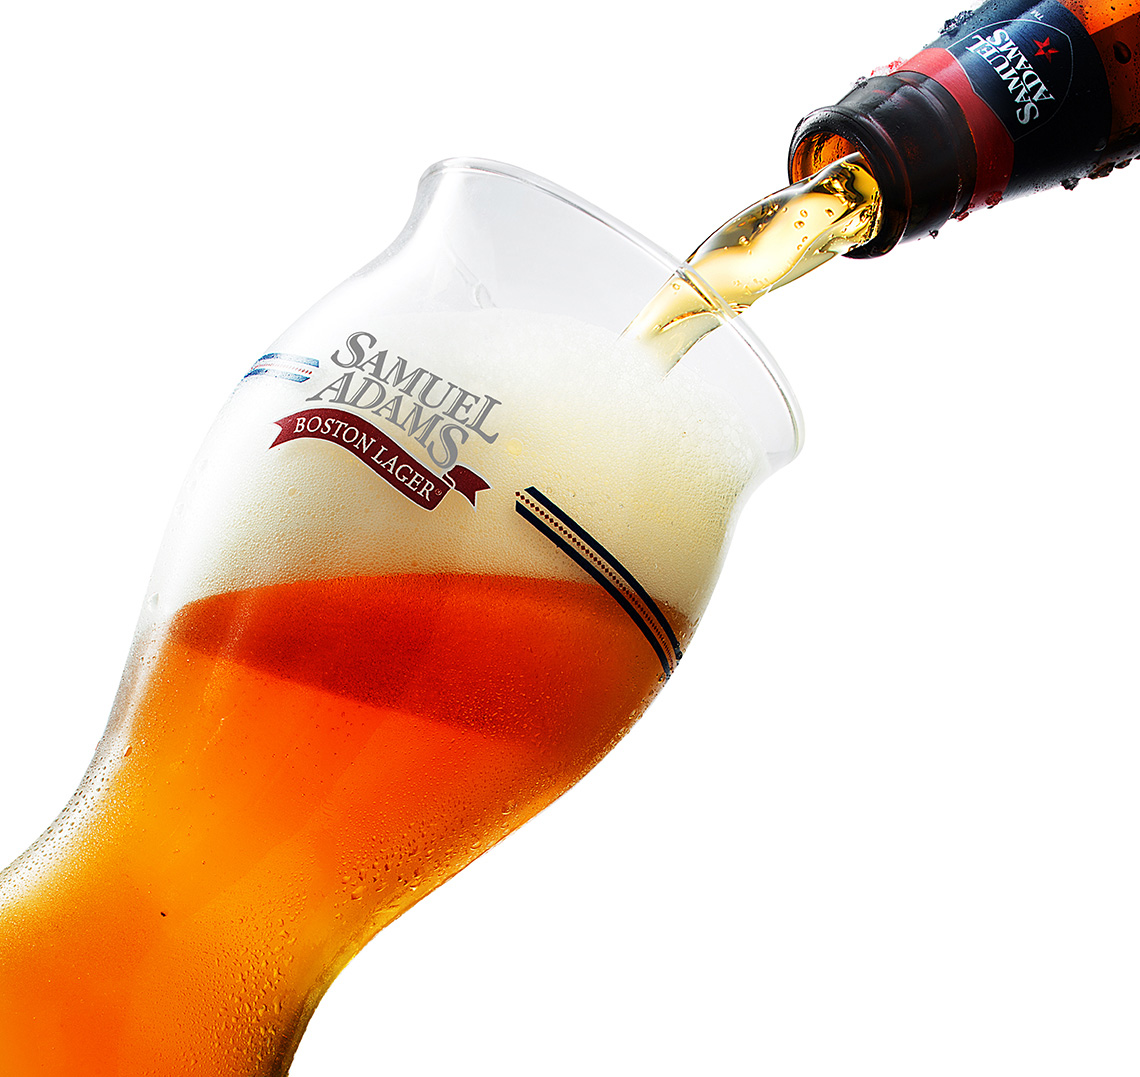 New-york-beverage-photography-samuelAdams-beer-jpg